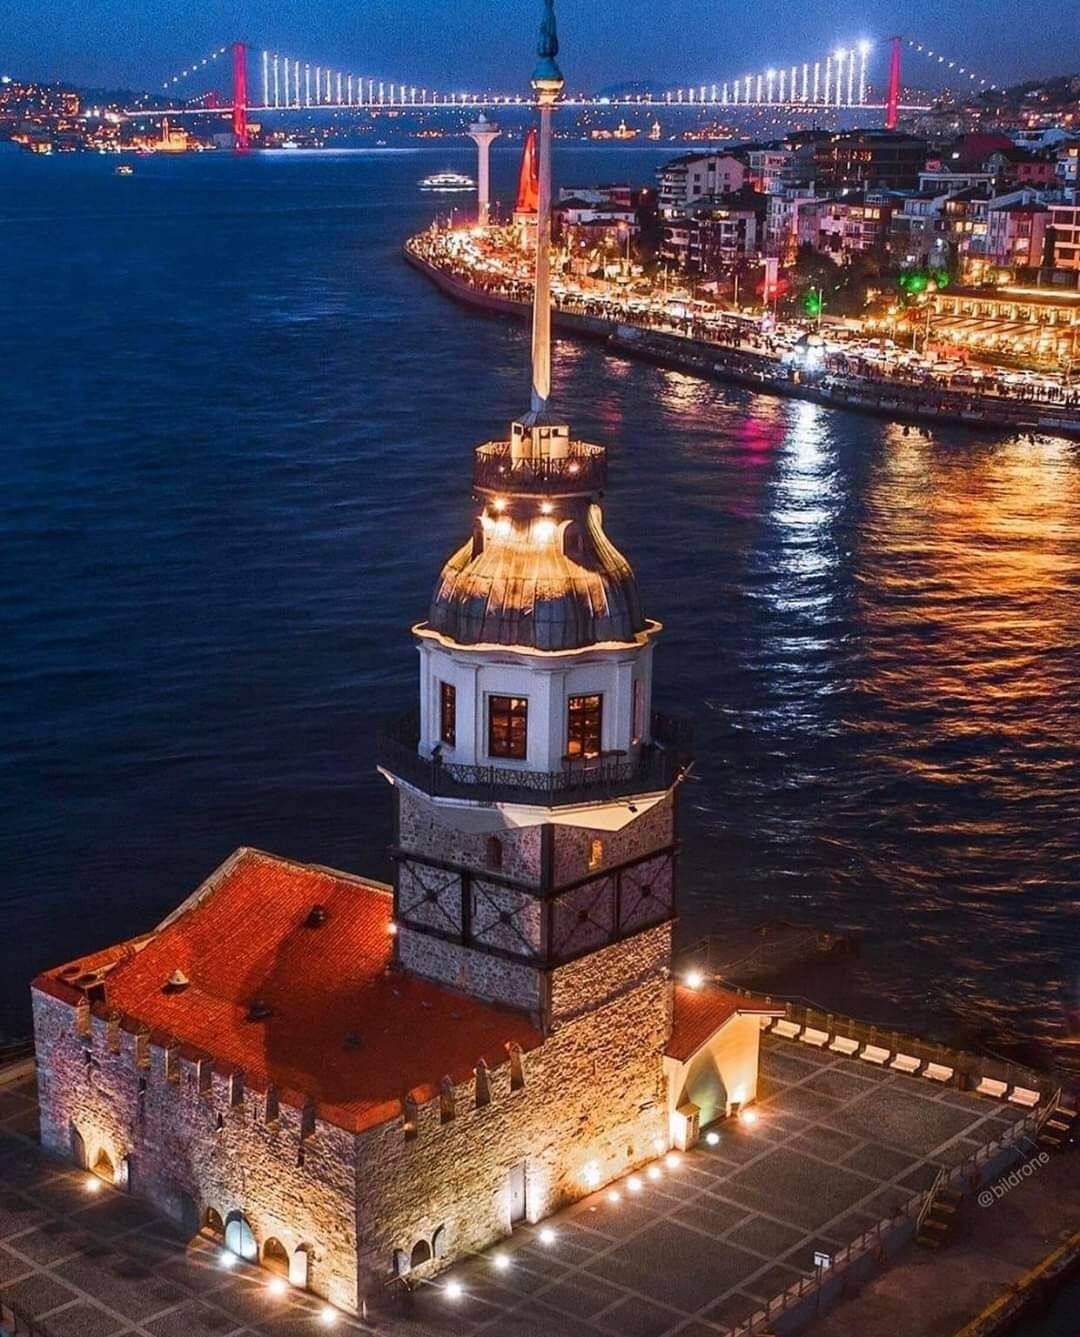 Pin By Sarvi On I Love To Travel In 2020 Travel Turkey Travel Travel Photography